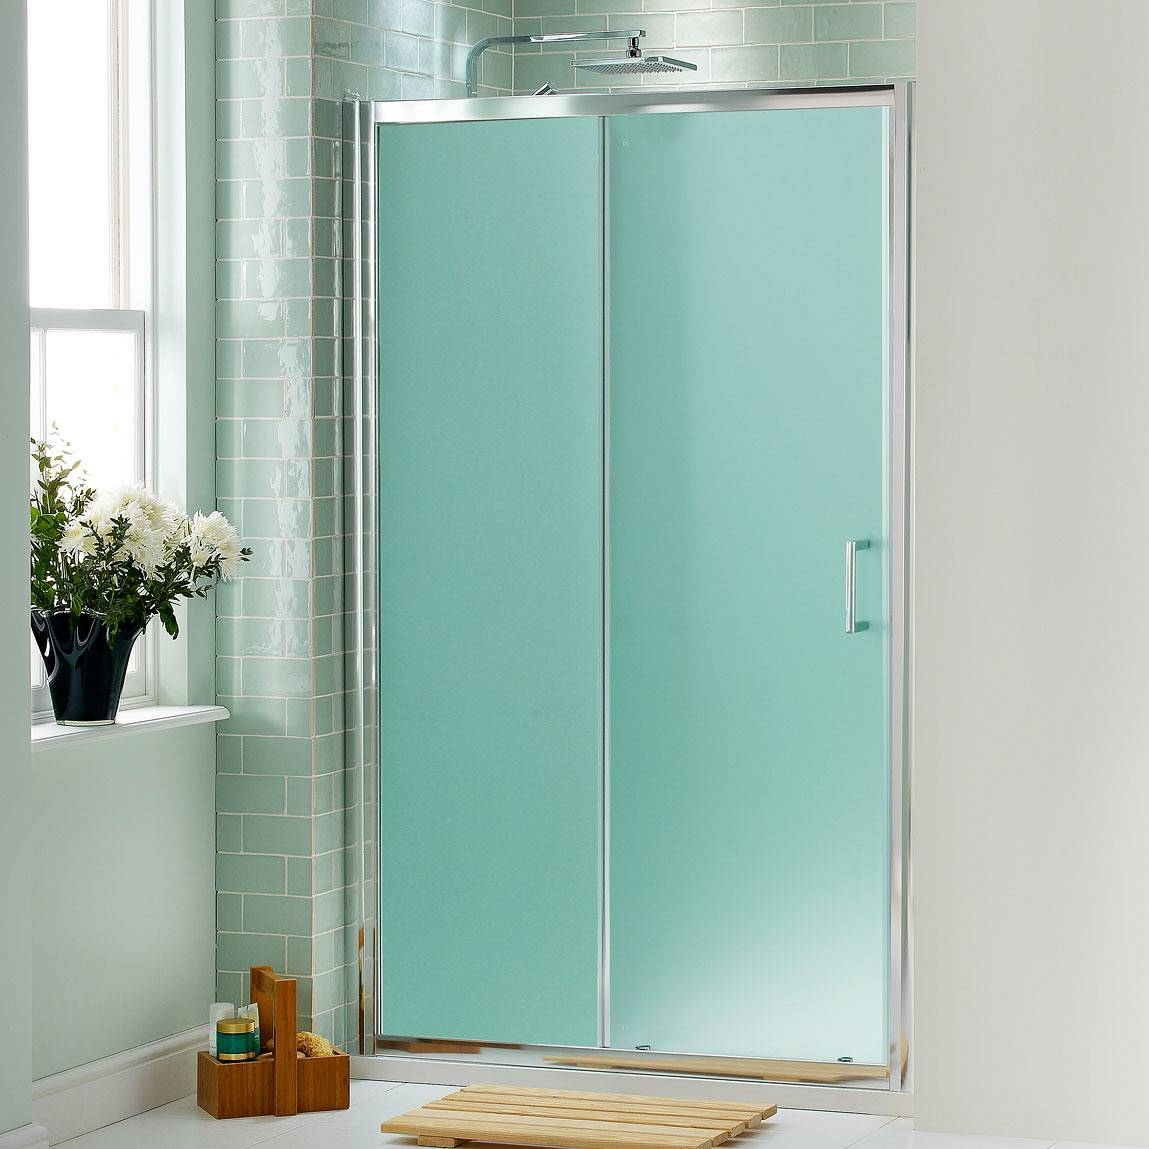 Permalink to Glass Sliding Doors For Bathrooms